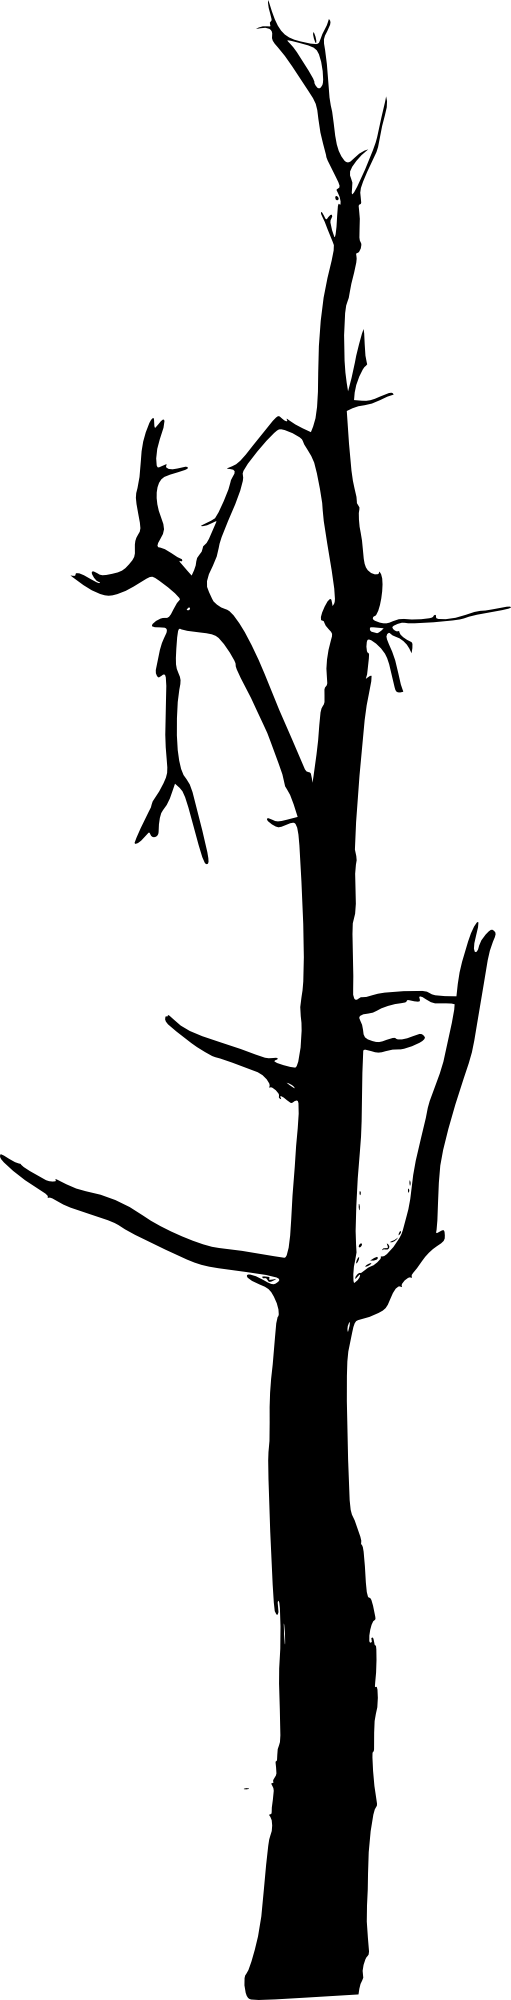 Simple Pine Tree Silhouette